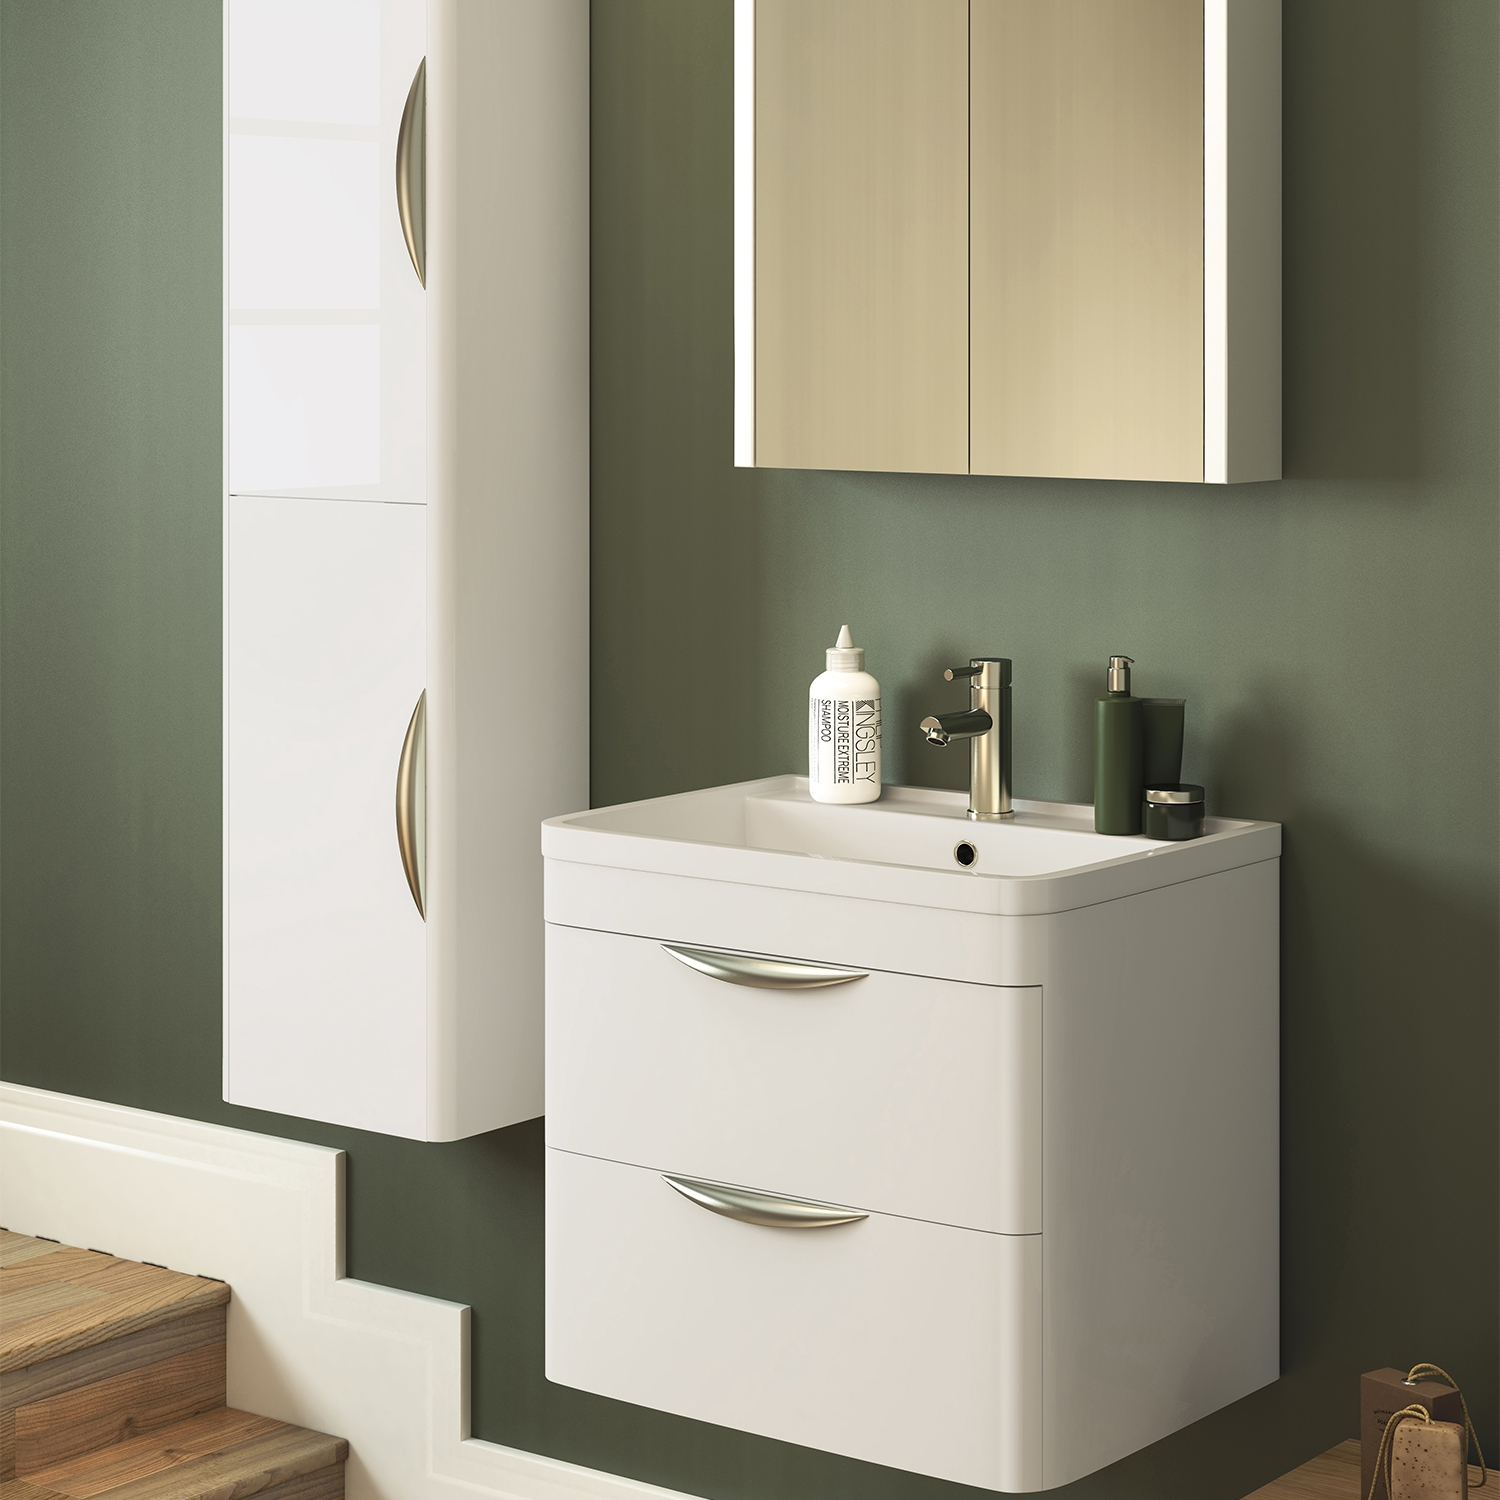 Premier Parade Wall Hung 2-Drawer Vanity Unit with Basin 600mm Wide - 1 Tap Hole-0